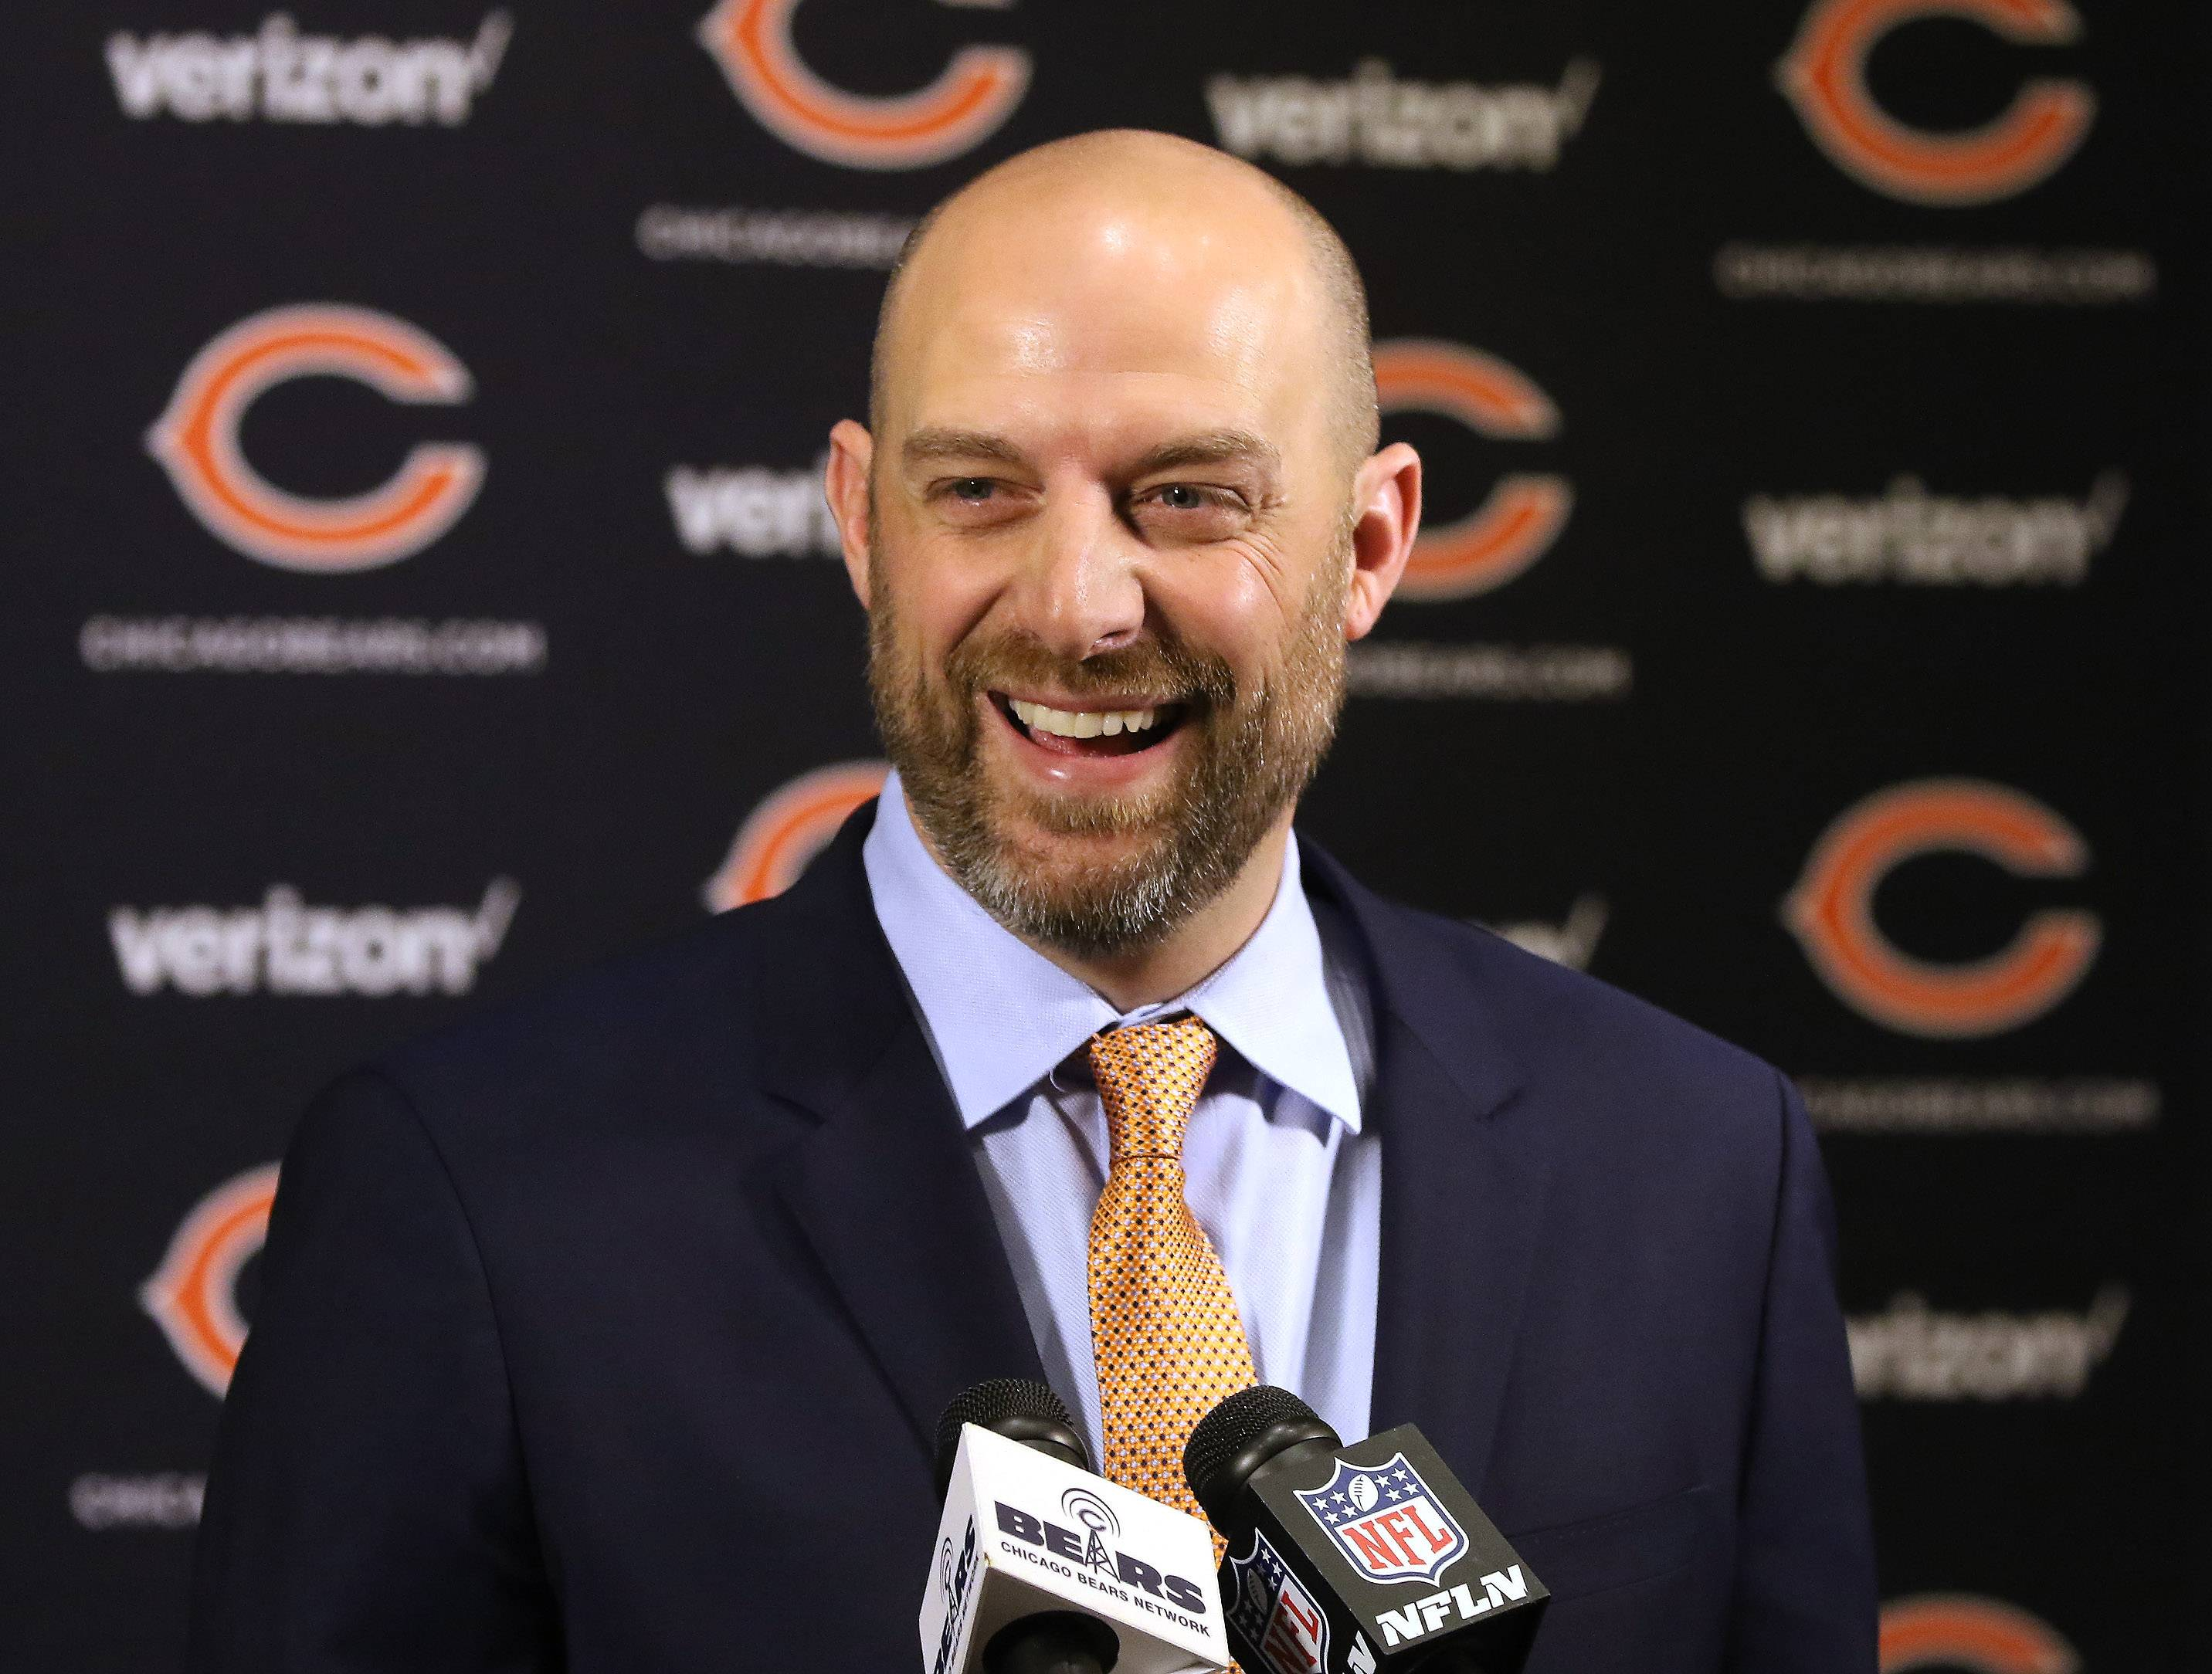 Wheaton Academy coach shares Arena Football memories with new Bears coach Nagy